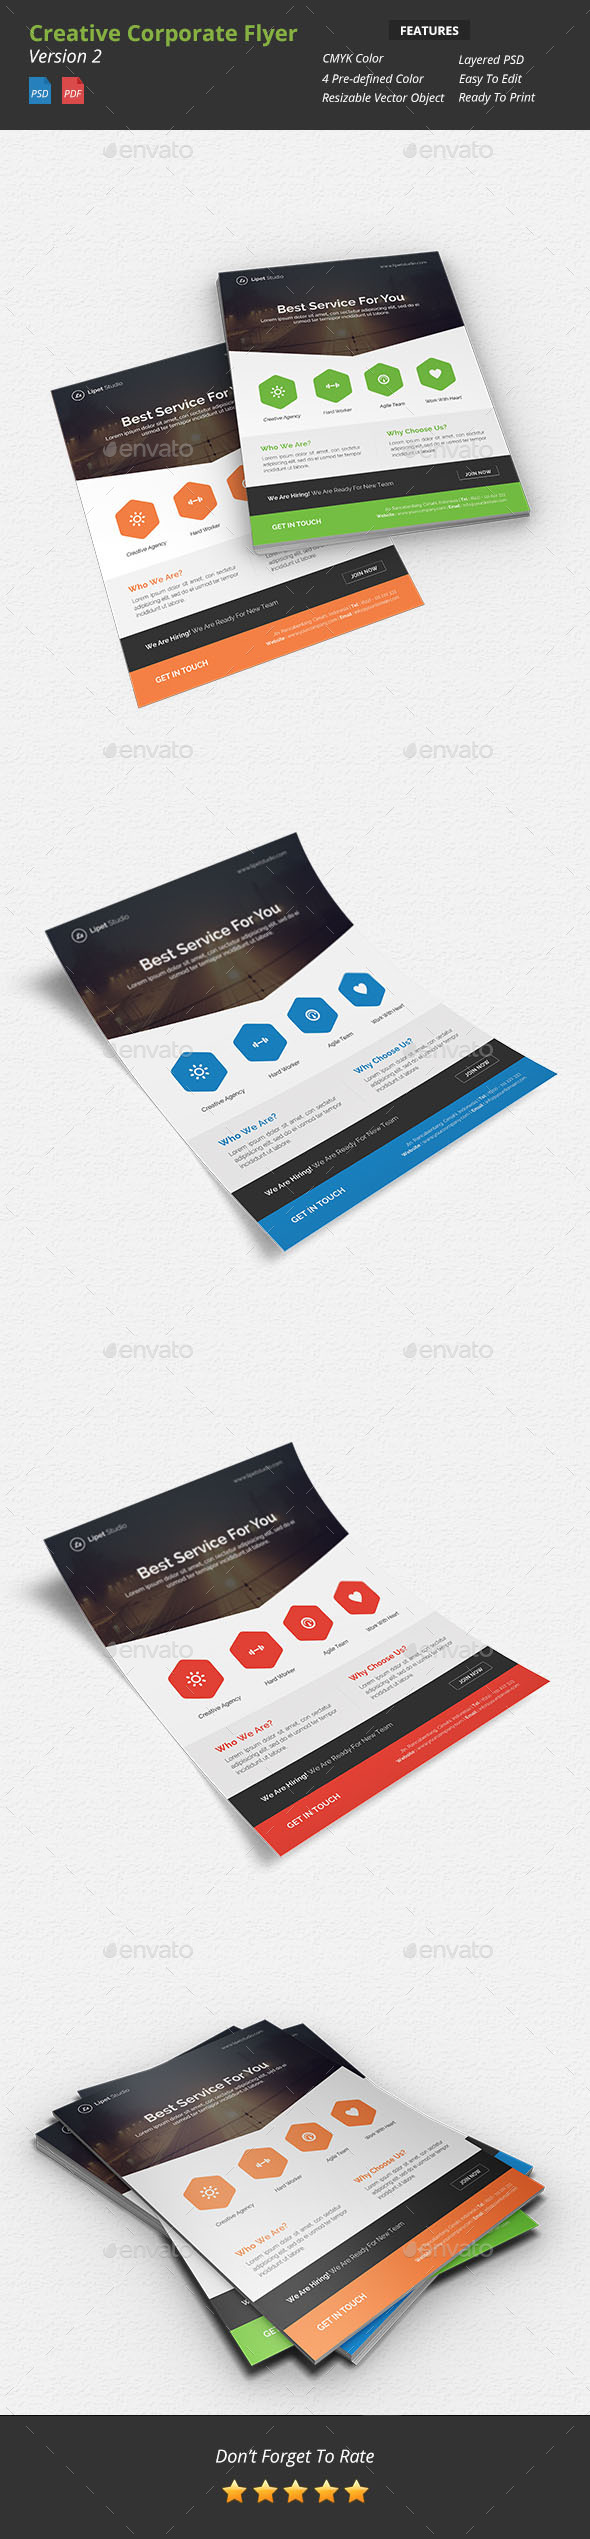 GraphicRiver Creative Corporate Flyer v2 9594725